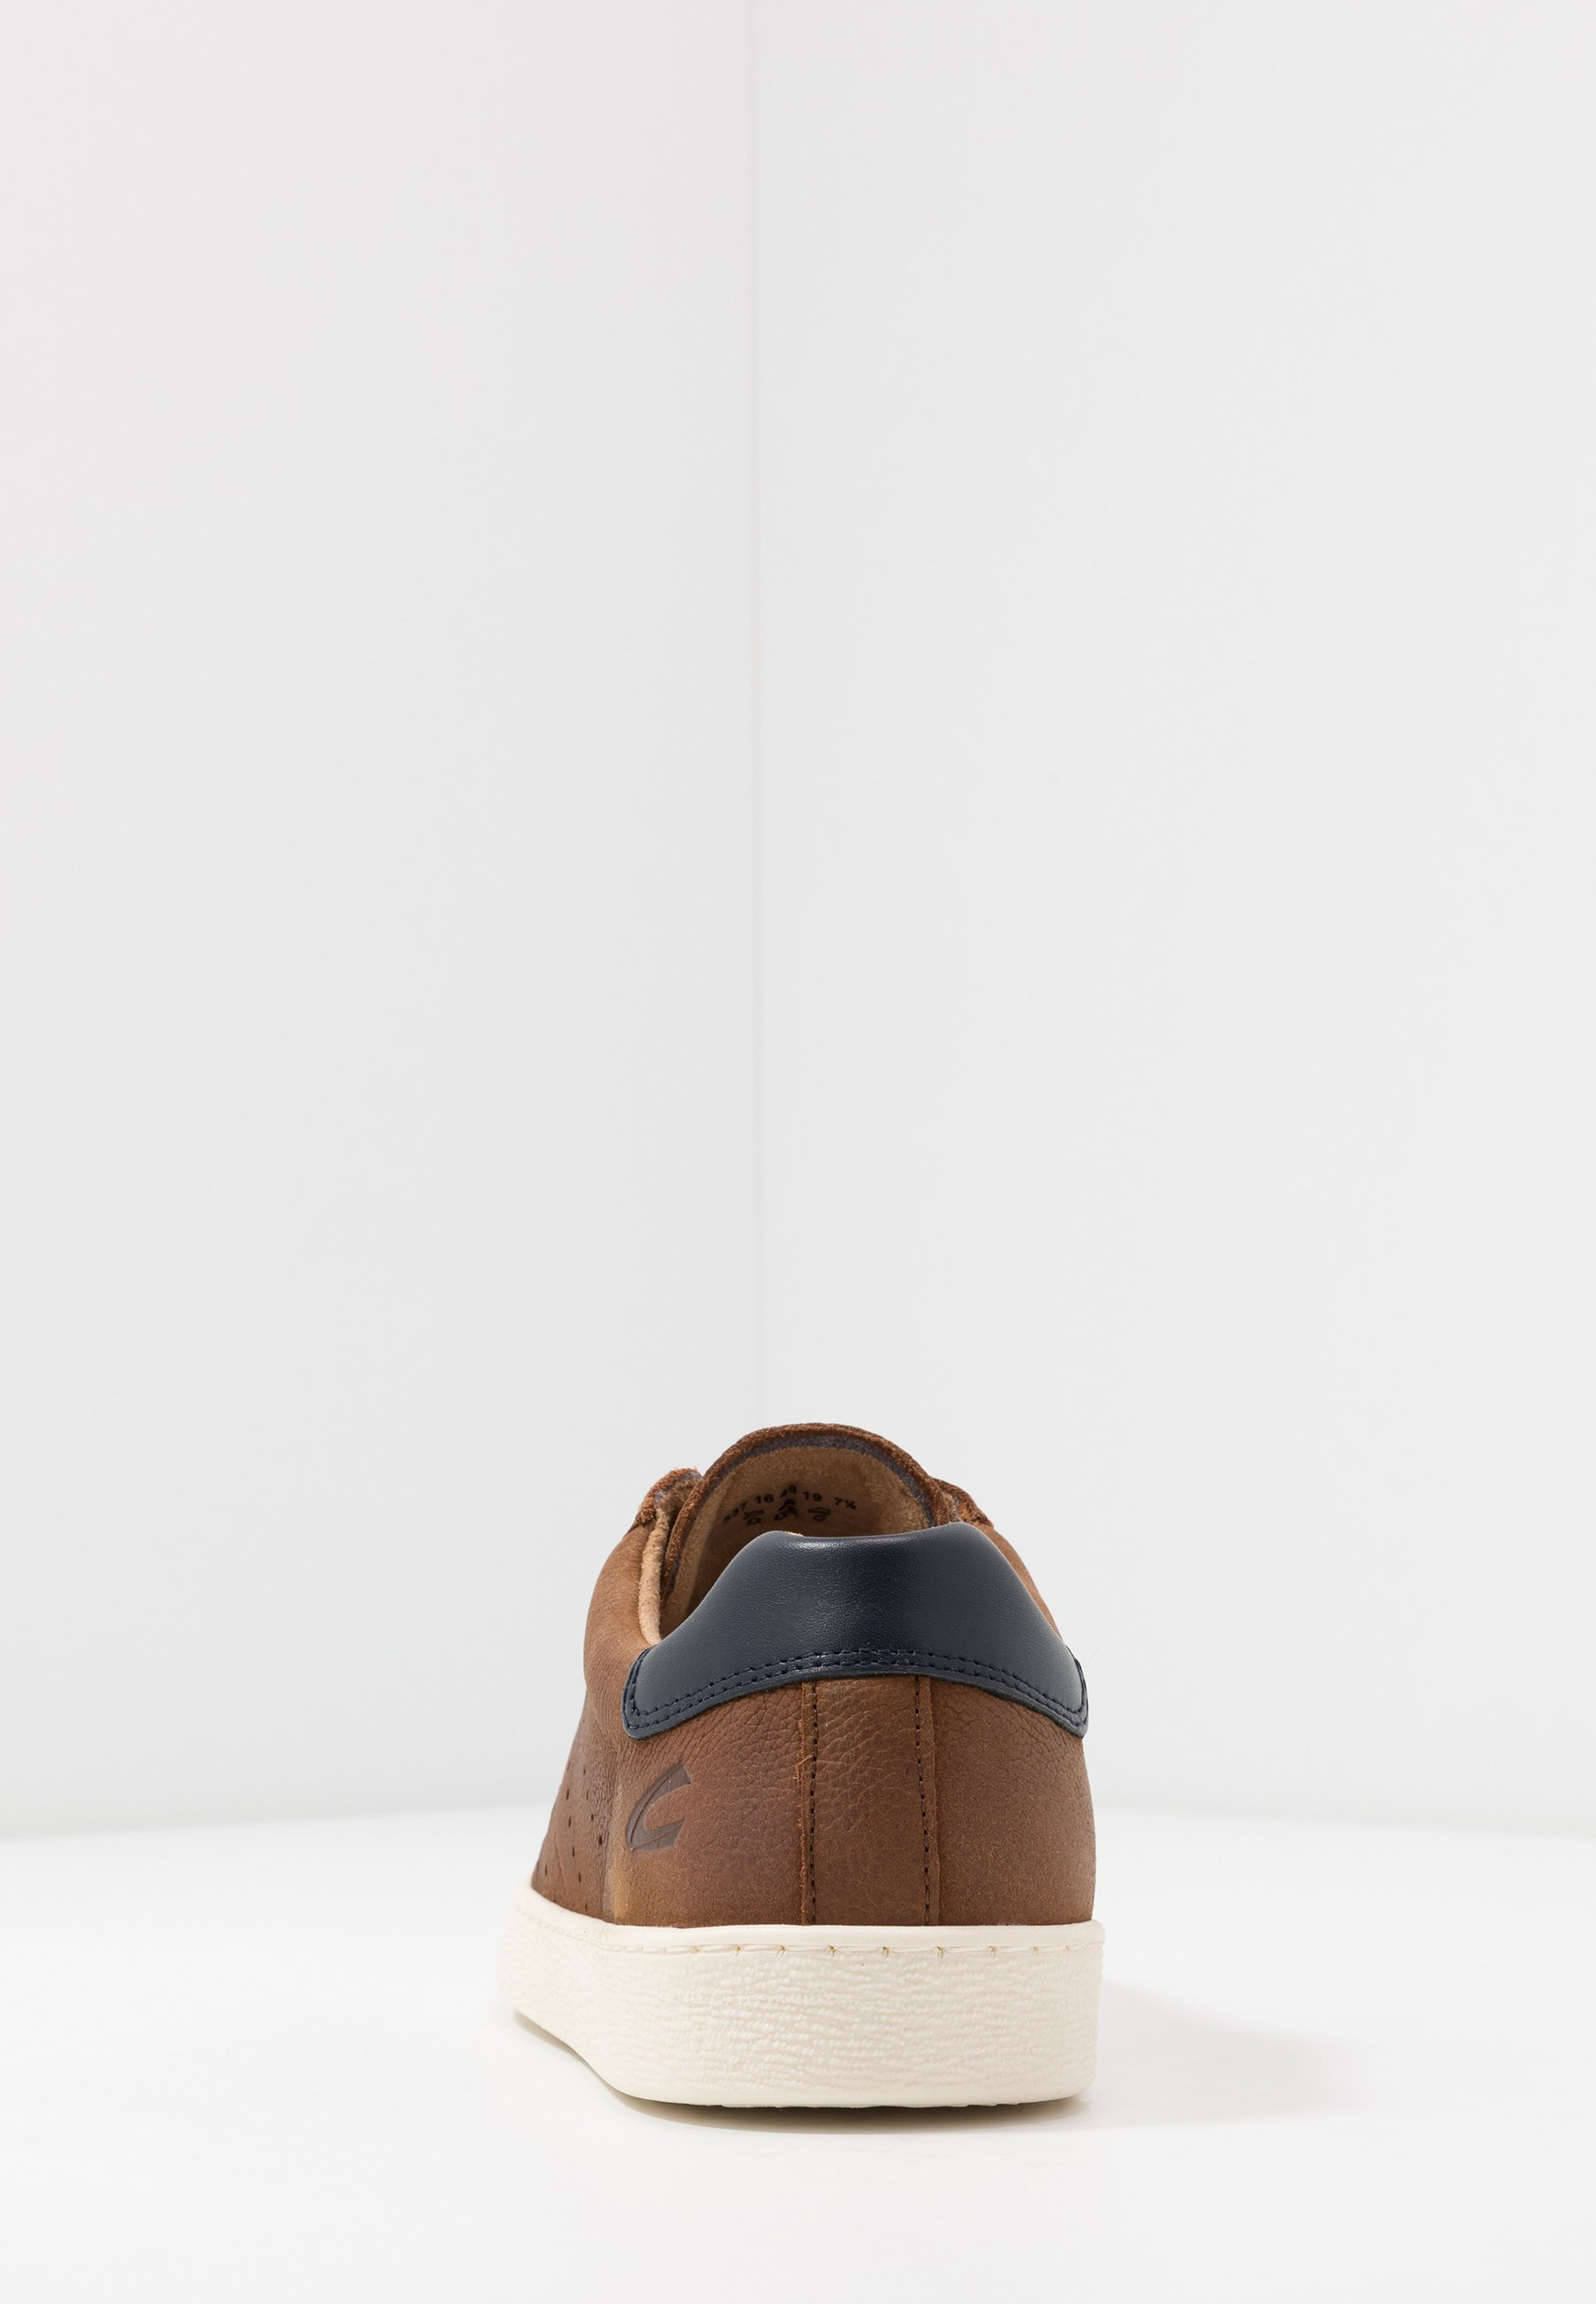 Camel Active Sneakers - Tobacco